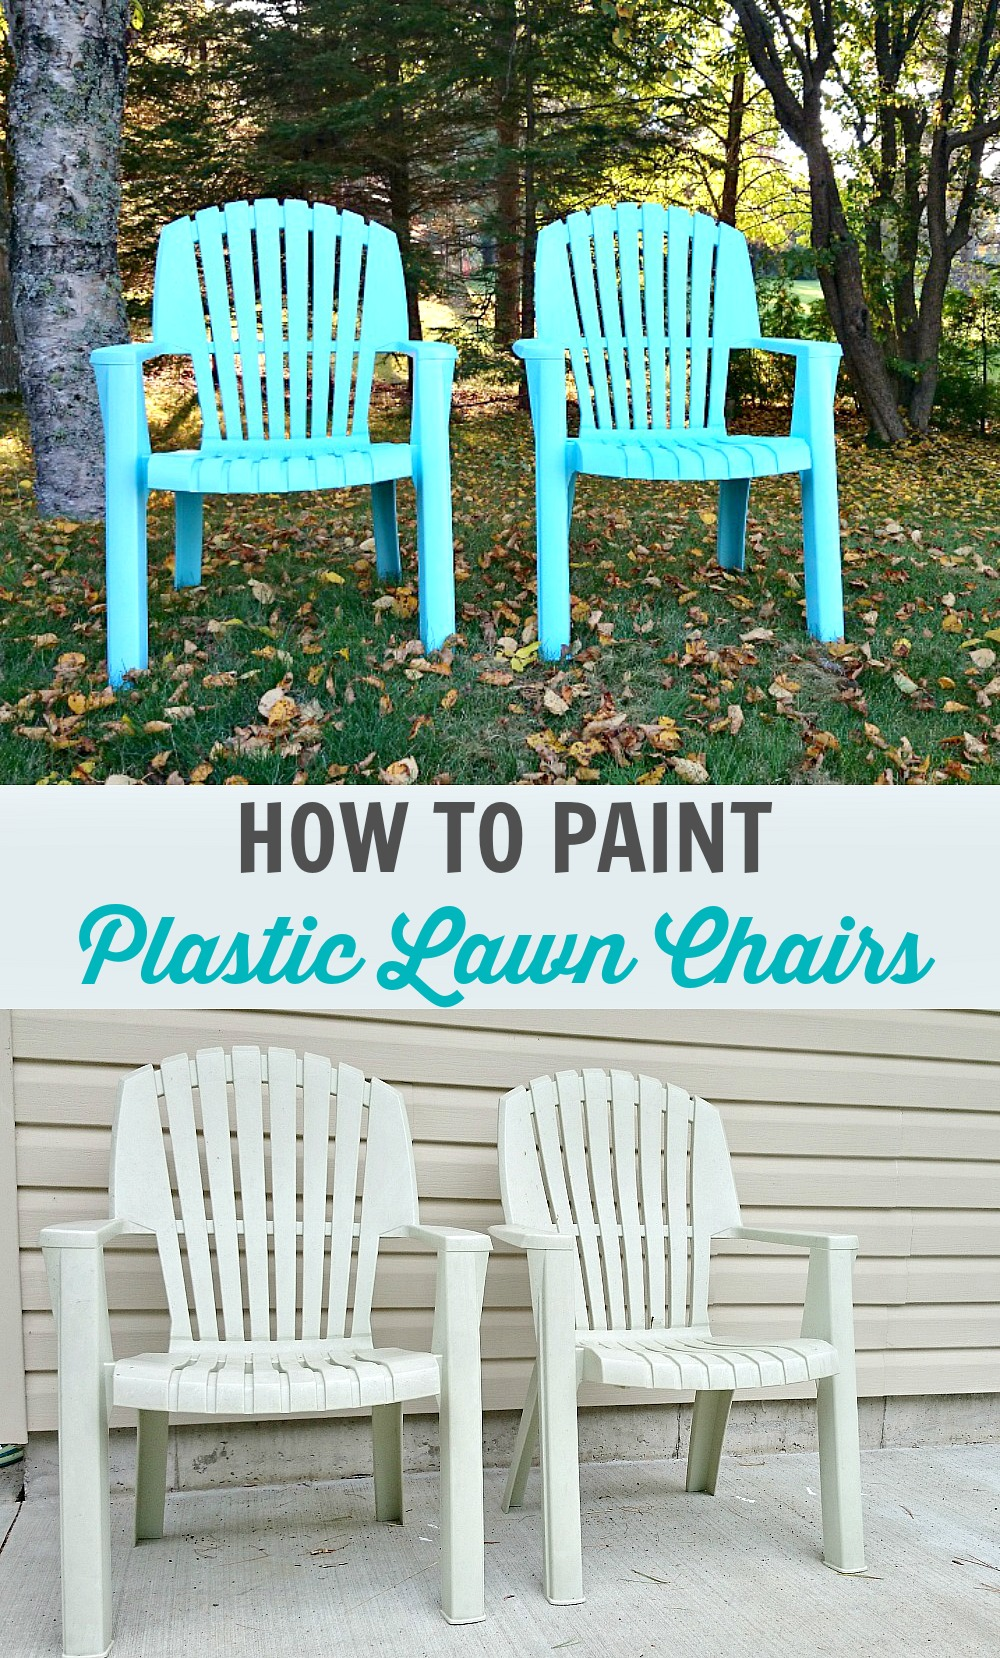 How To Spray Paint Plastic Lawn Chairs By @danslelakehouse ...